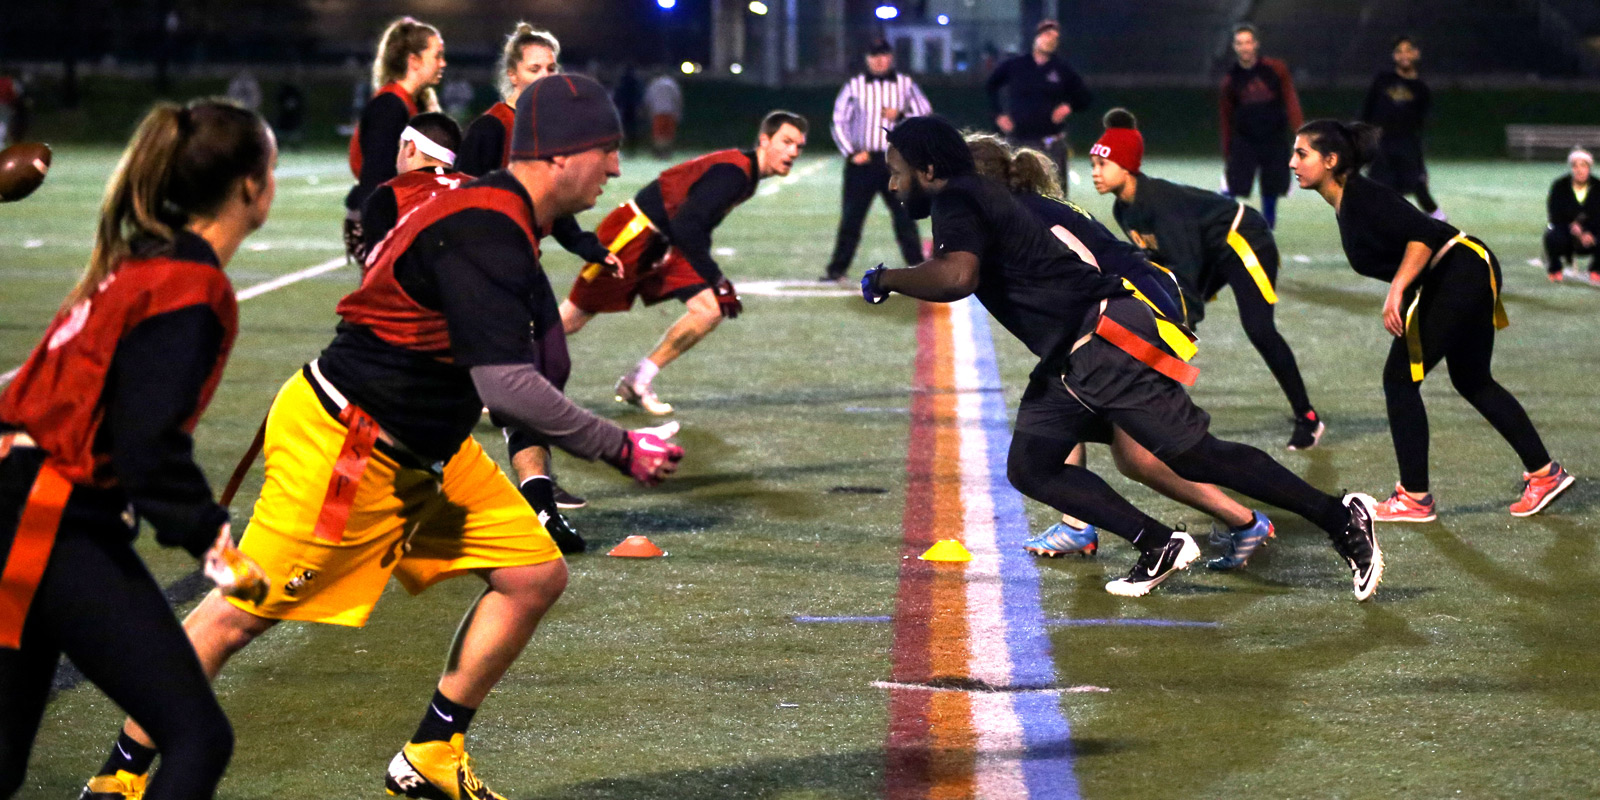 Ohio State students run a play during a coed recreation flag football game